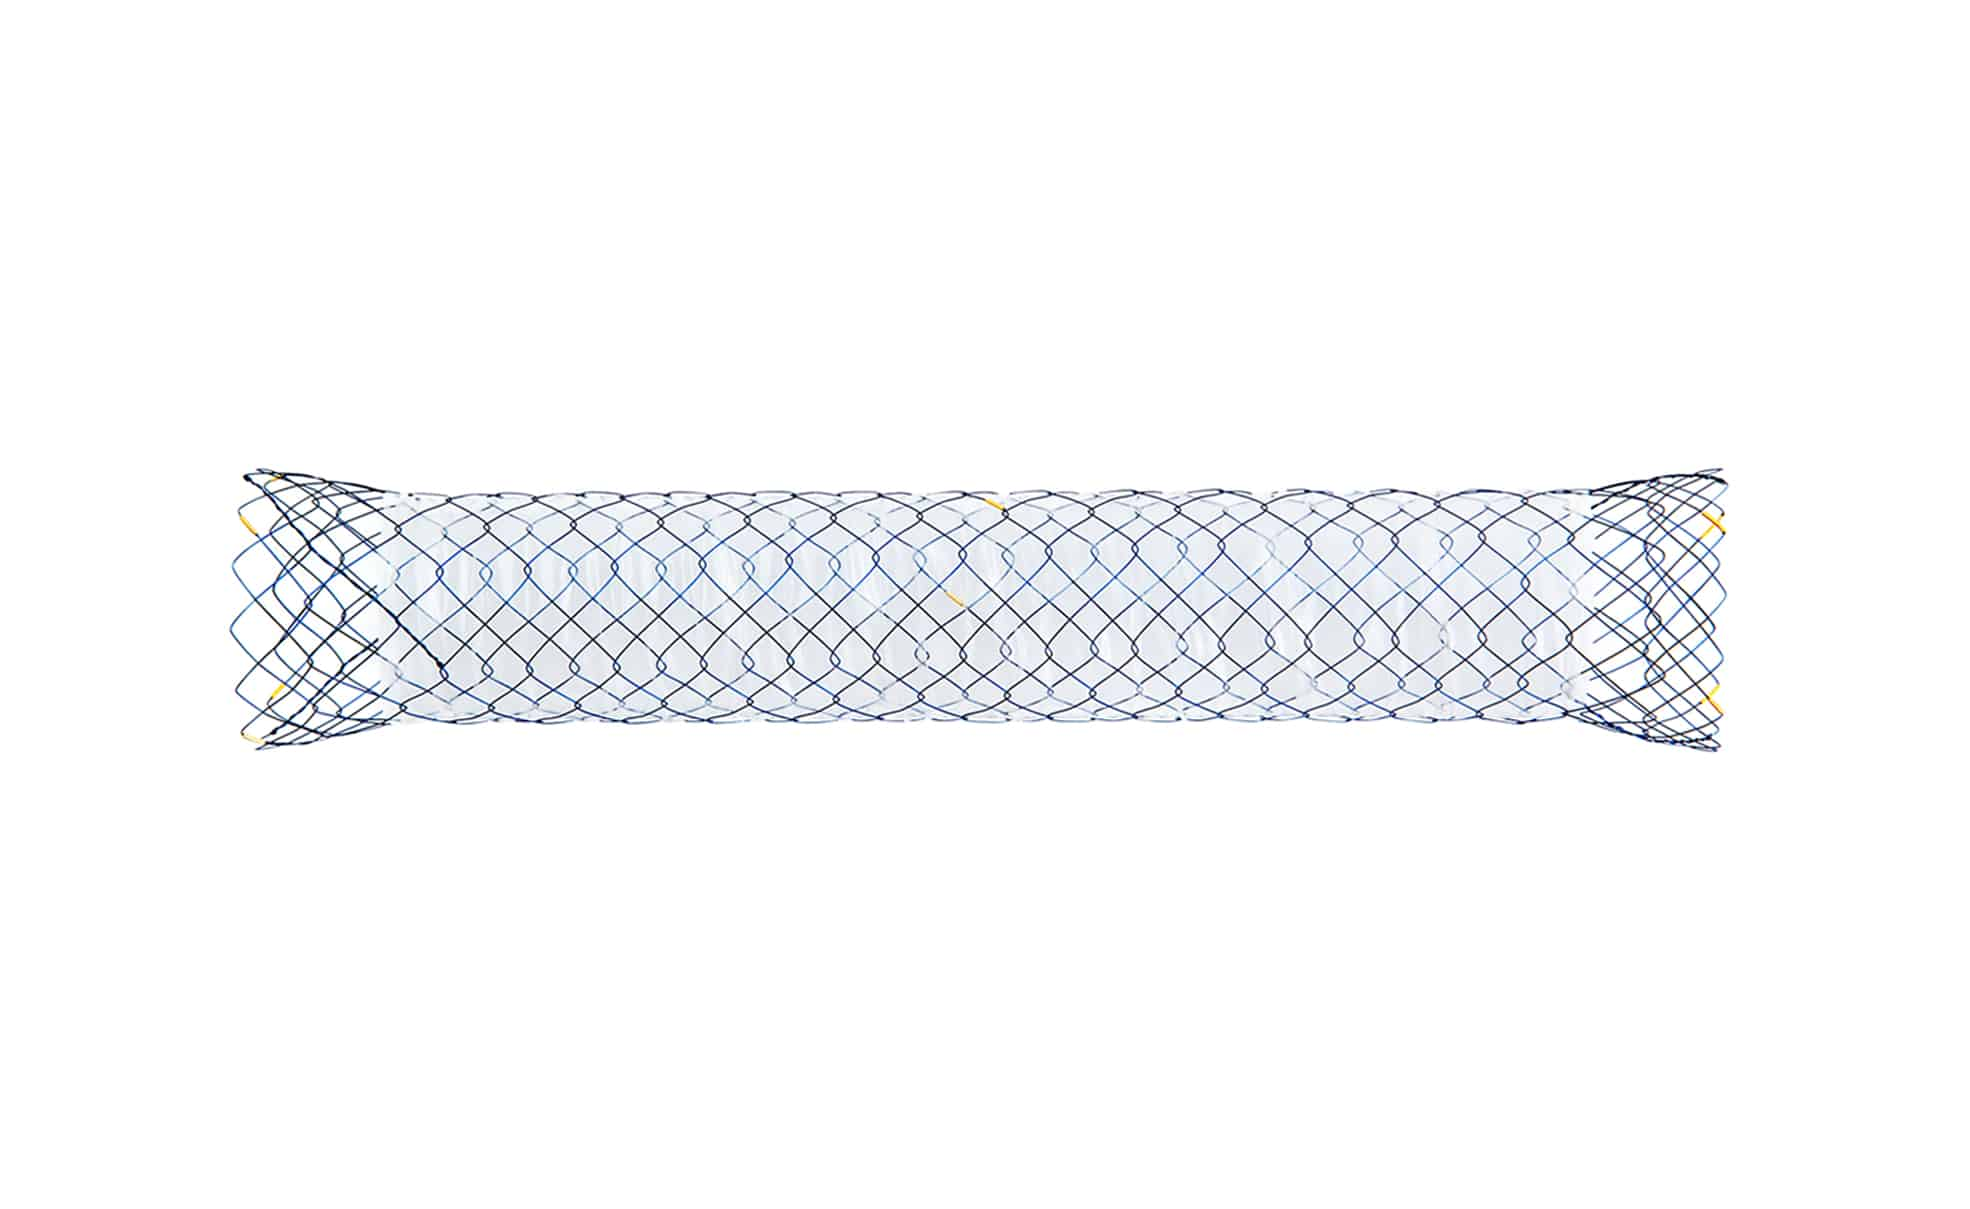 TLC Partially Covered Colonic Stent